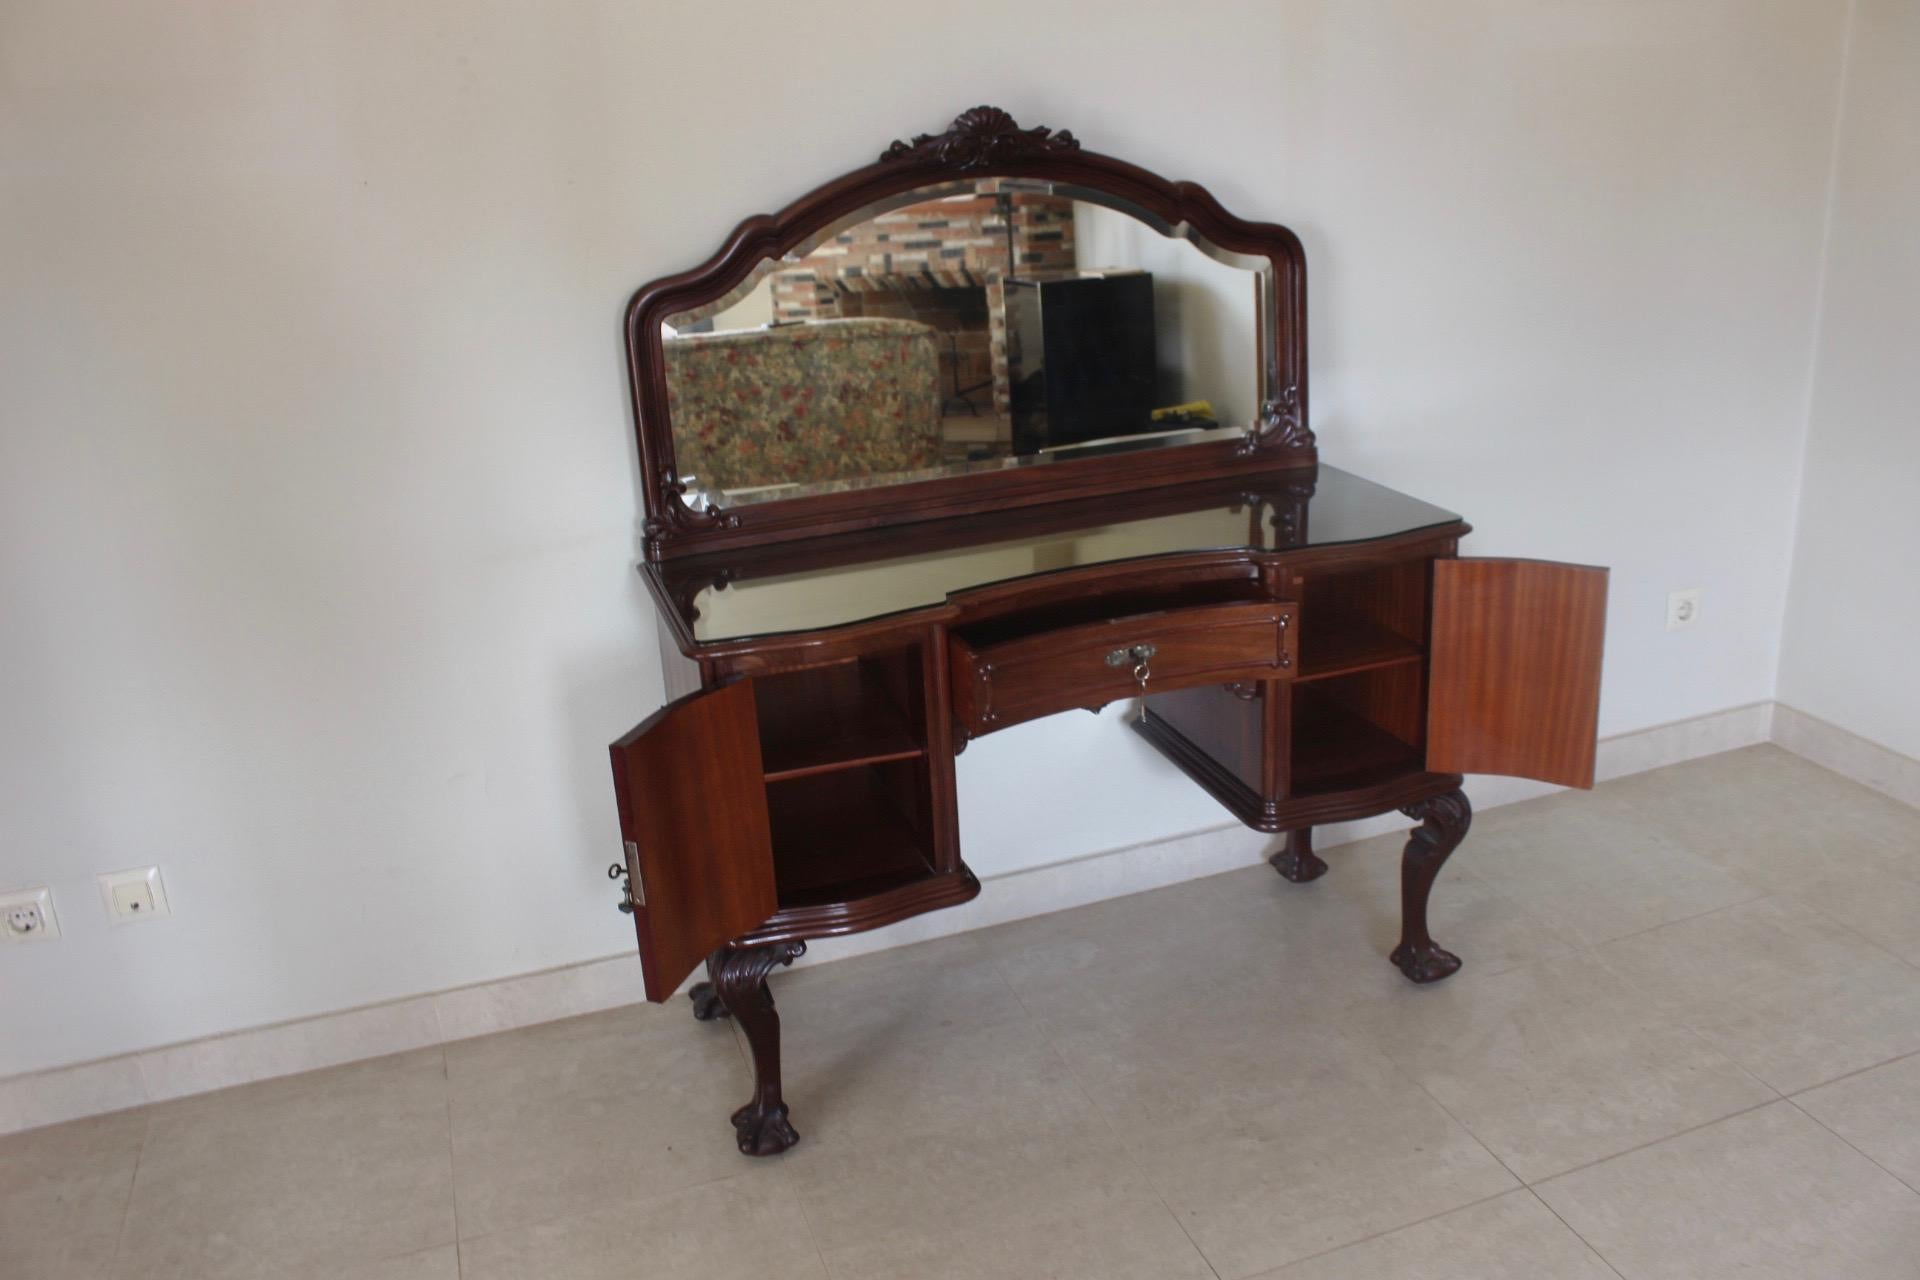 Delicieux Chippendale Ball U0026 Claw Mahogany Wood Dressing Table With Mirror, 19th  Century